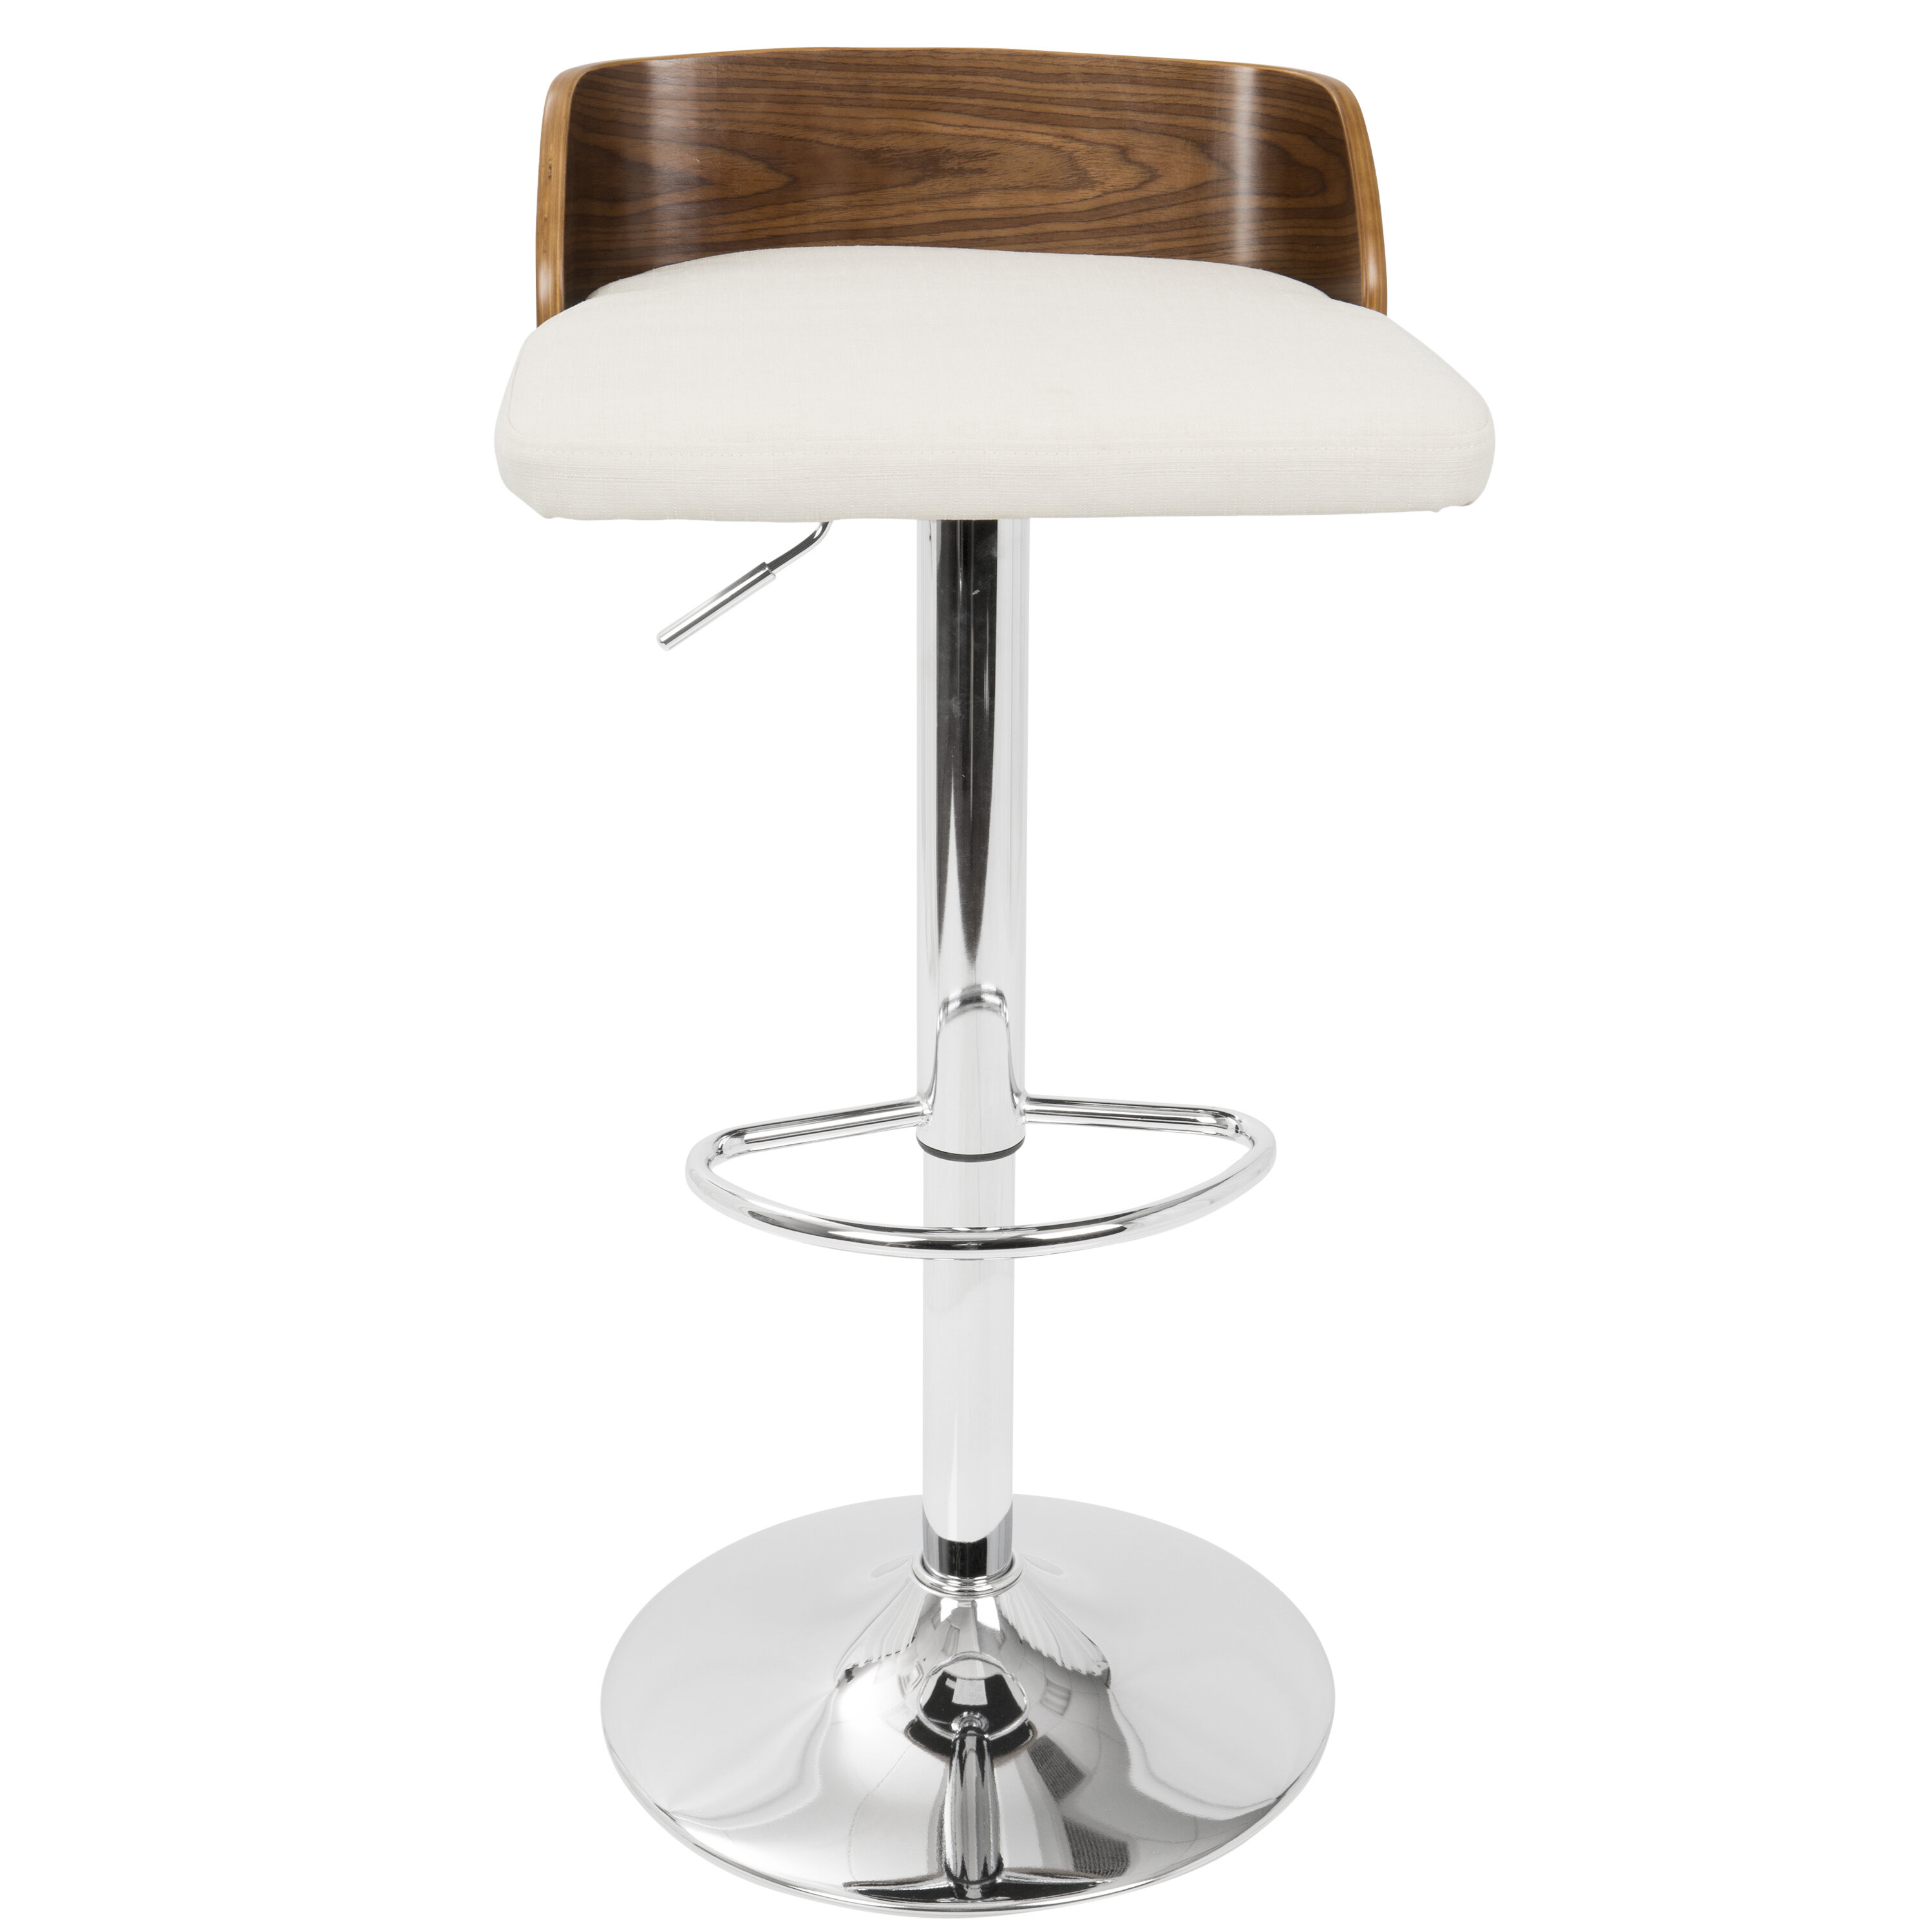 Astounding Rockaway Adjustable Height Swivel Bar Stool Gmtry Best Dining Table And Chair Ideas Images Gmtryco